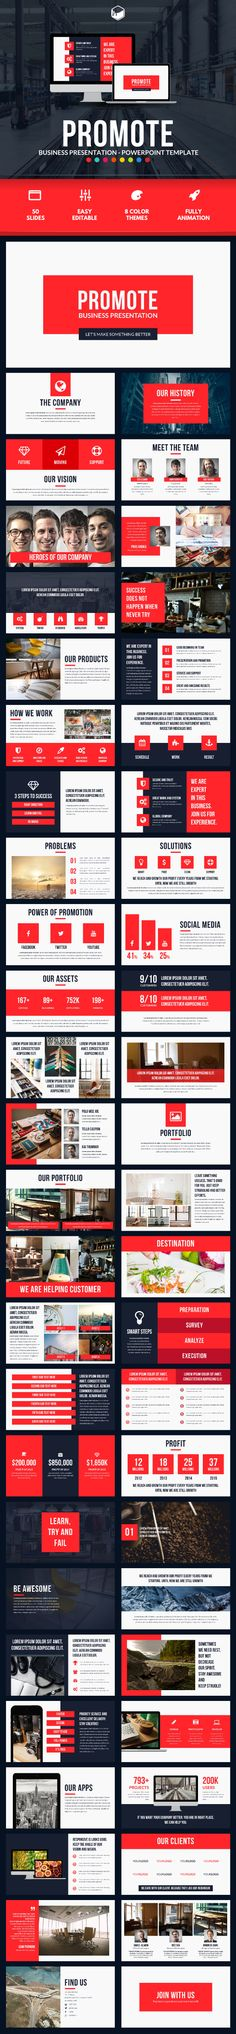 Promote - PowerPoint Template. Download here: http://graphicriver.net/item/promote-powerpoint-template/14725343?ref=ksioks